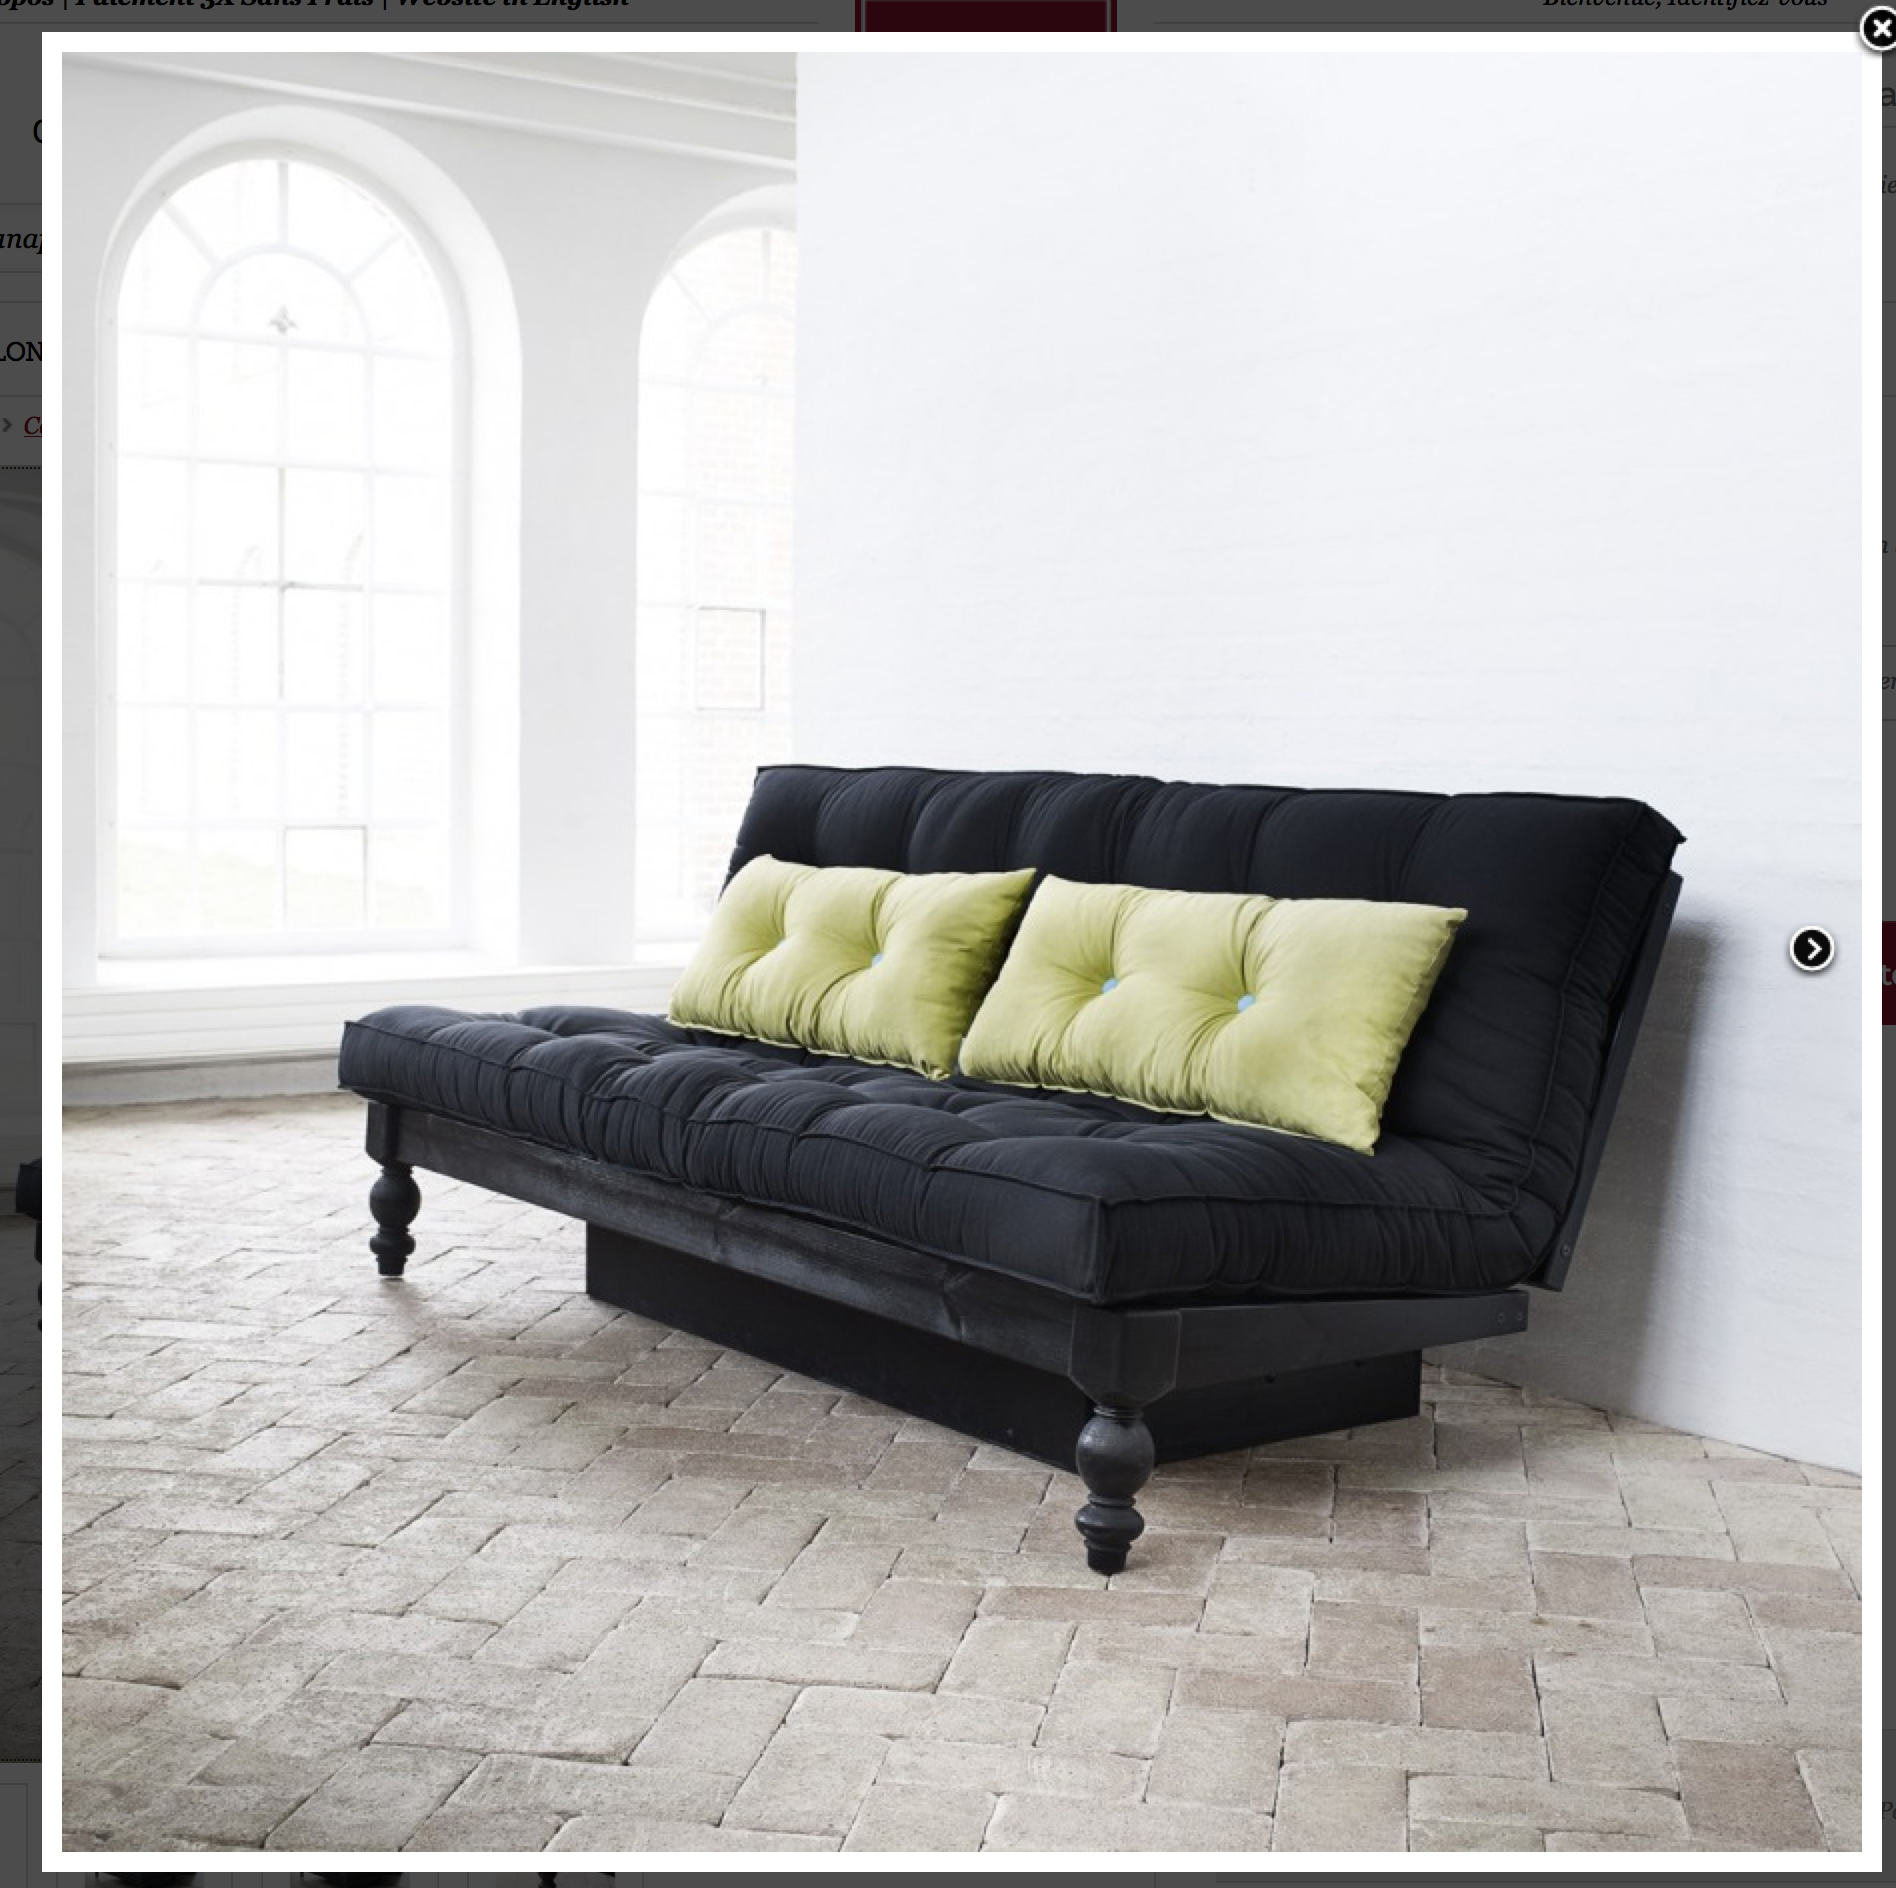 Cozy Beddinge Cover For Modern Living Room Ideas Daybeds N